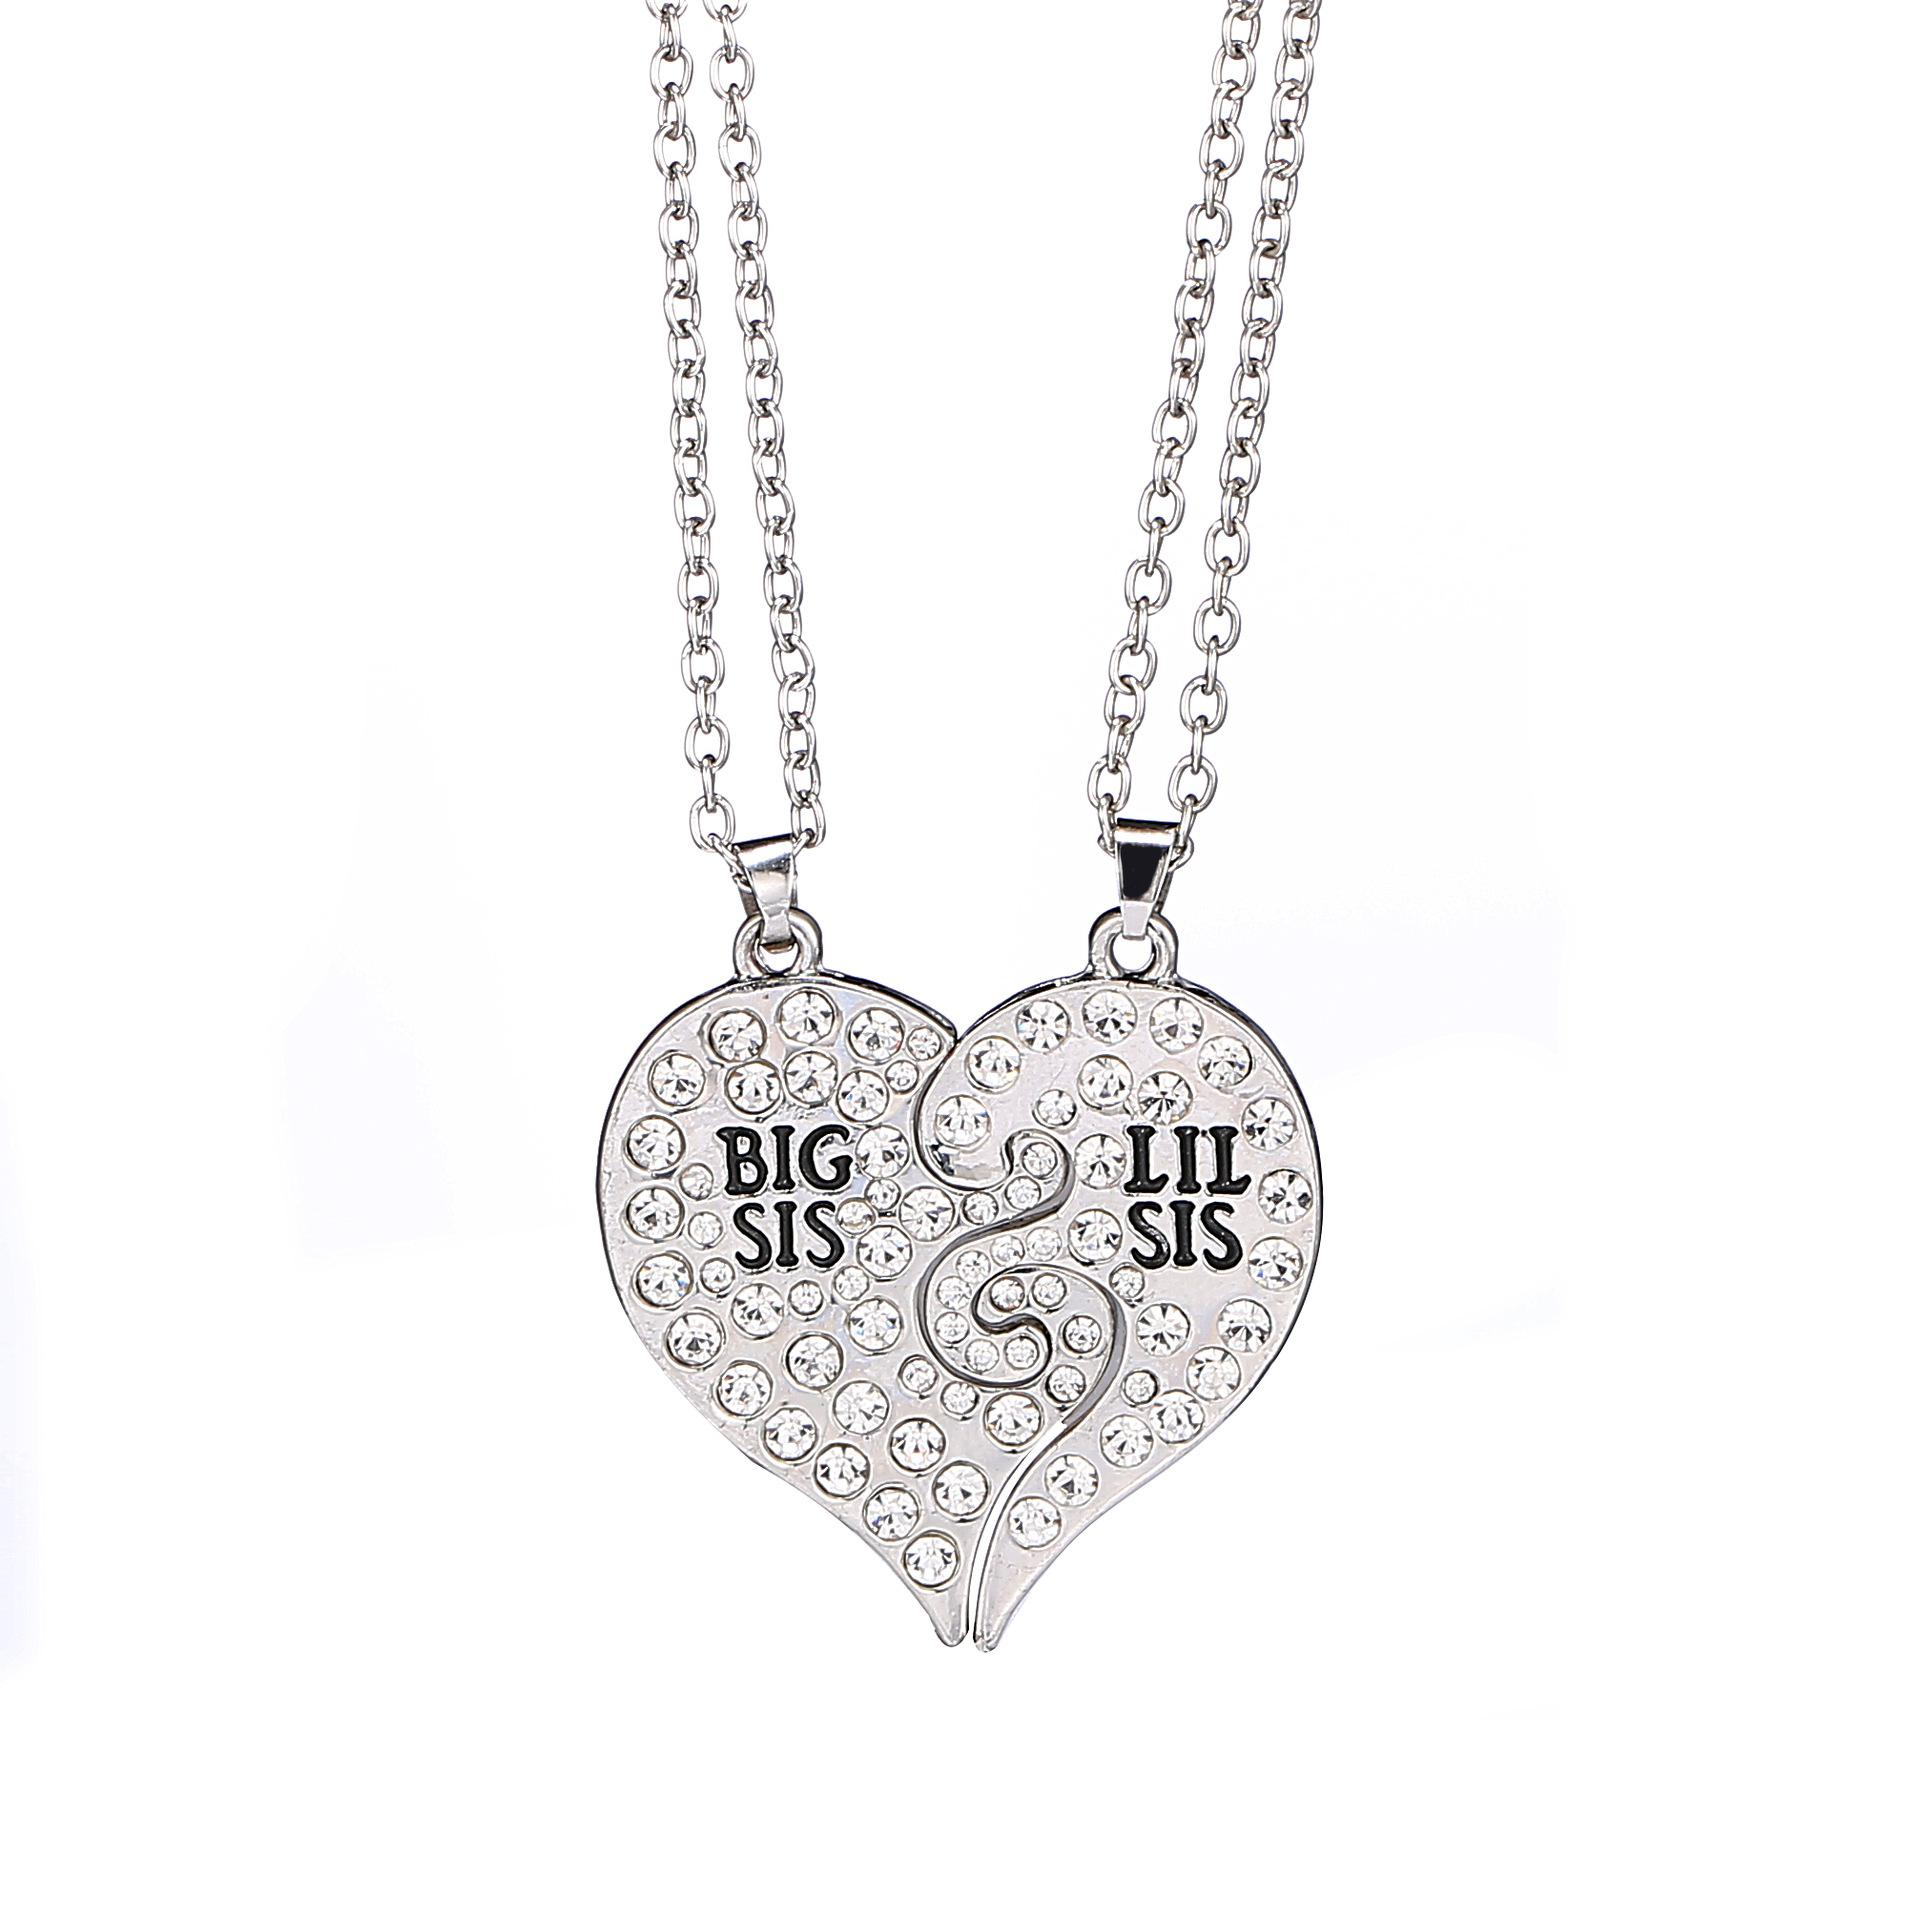 Wholesale 2017 new big sis lil sis big sister little sister bff wholesale 2017 new big sis lil sis big sister little sister bff best friends forever gold silver broken heart rhinestone necklace sister gift butterfly mozeypictures Gallery